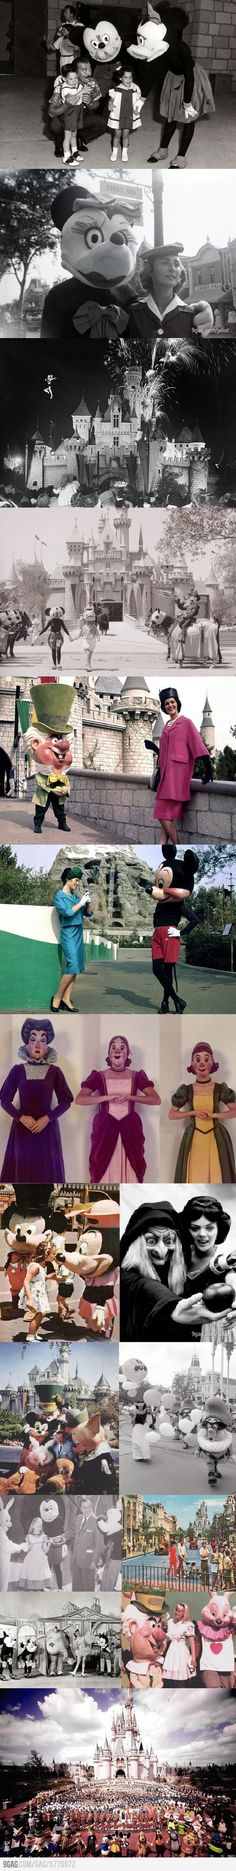 Old photos from Disneyland